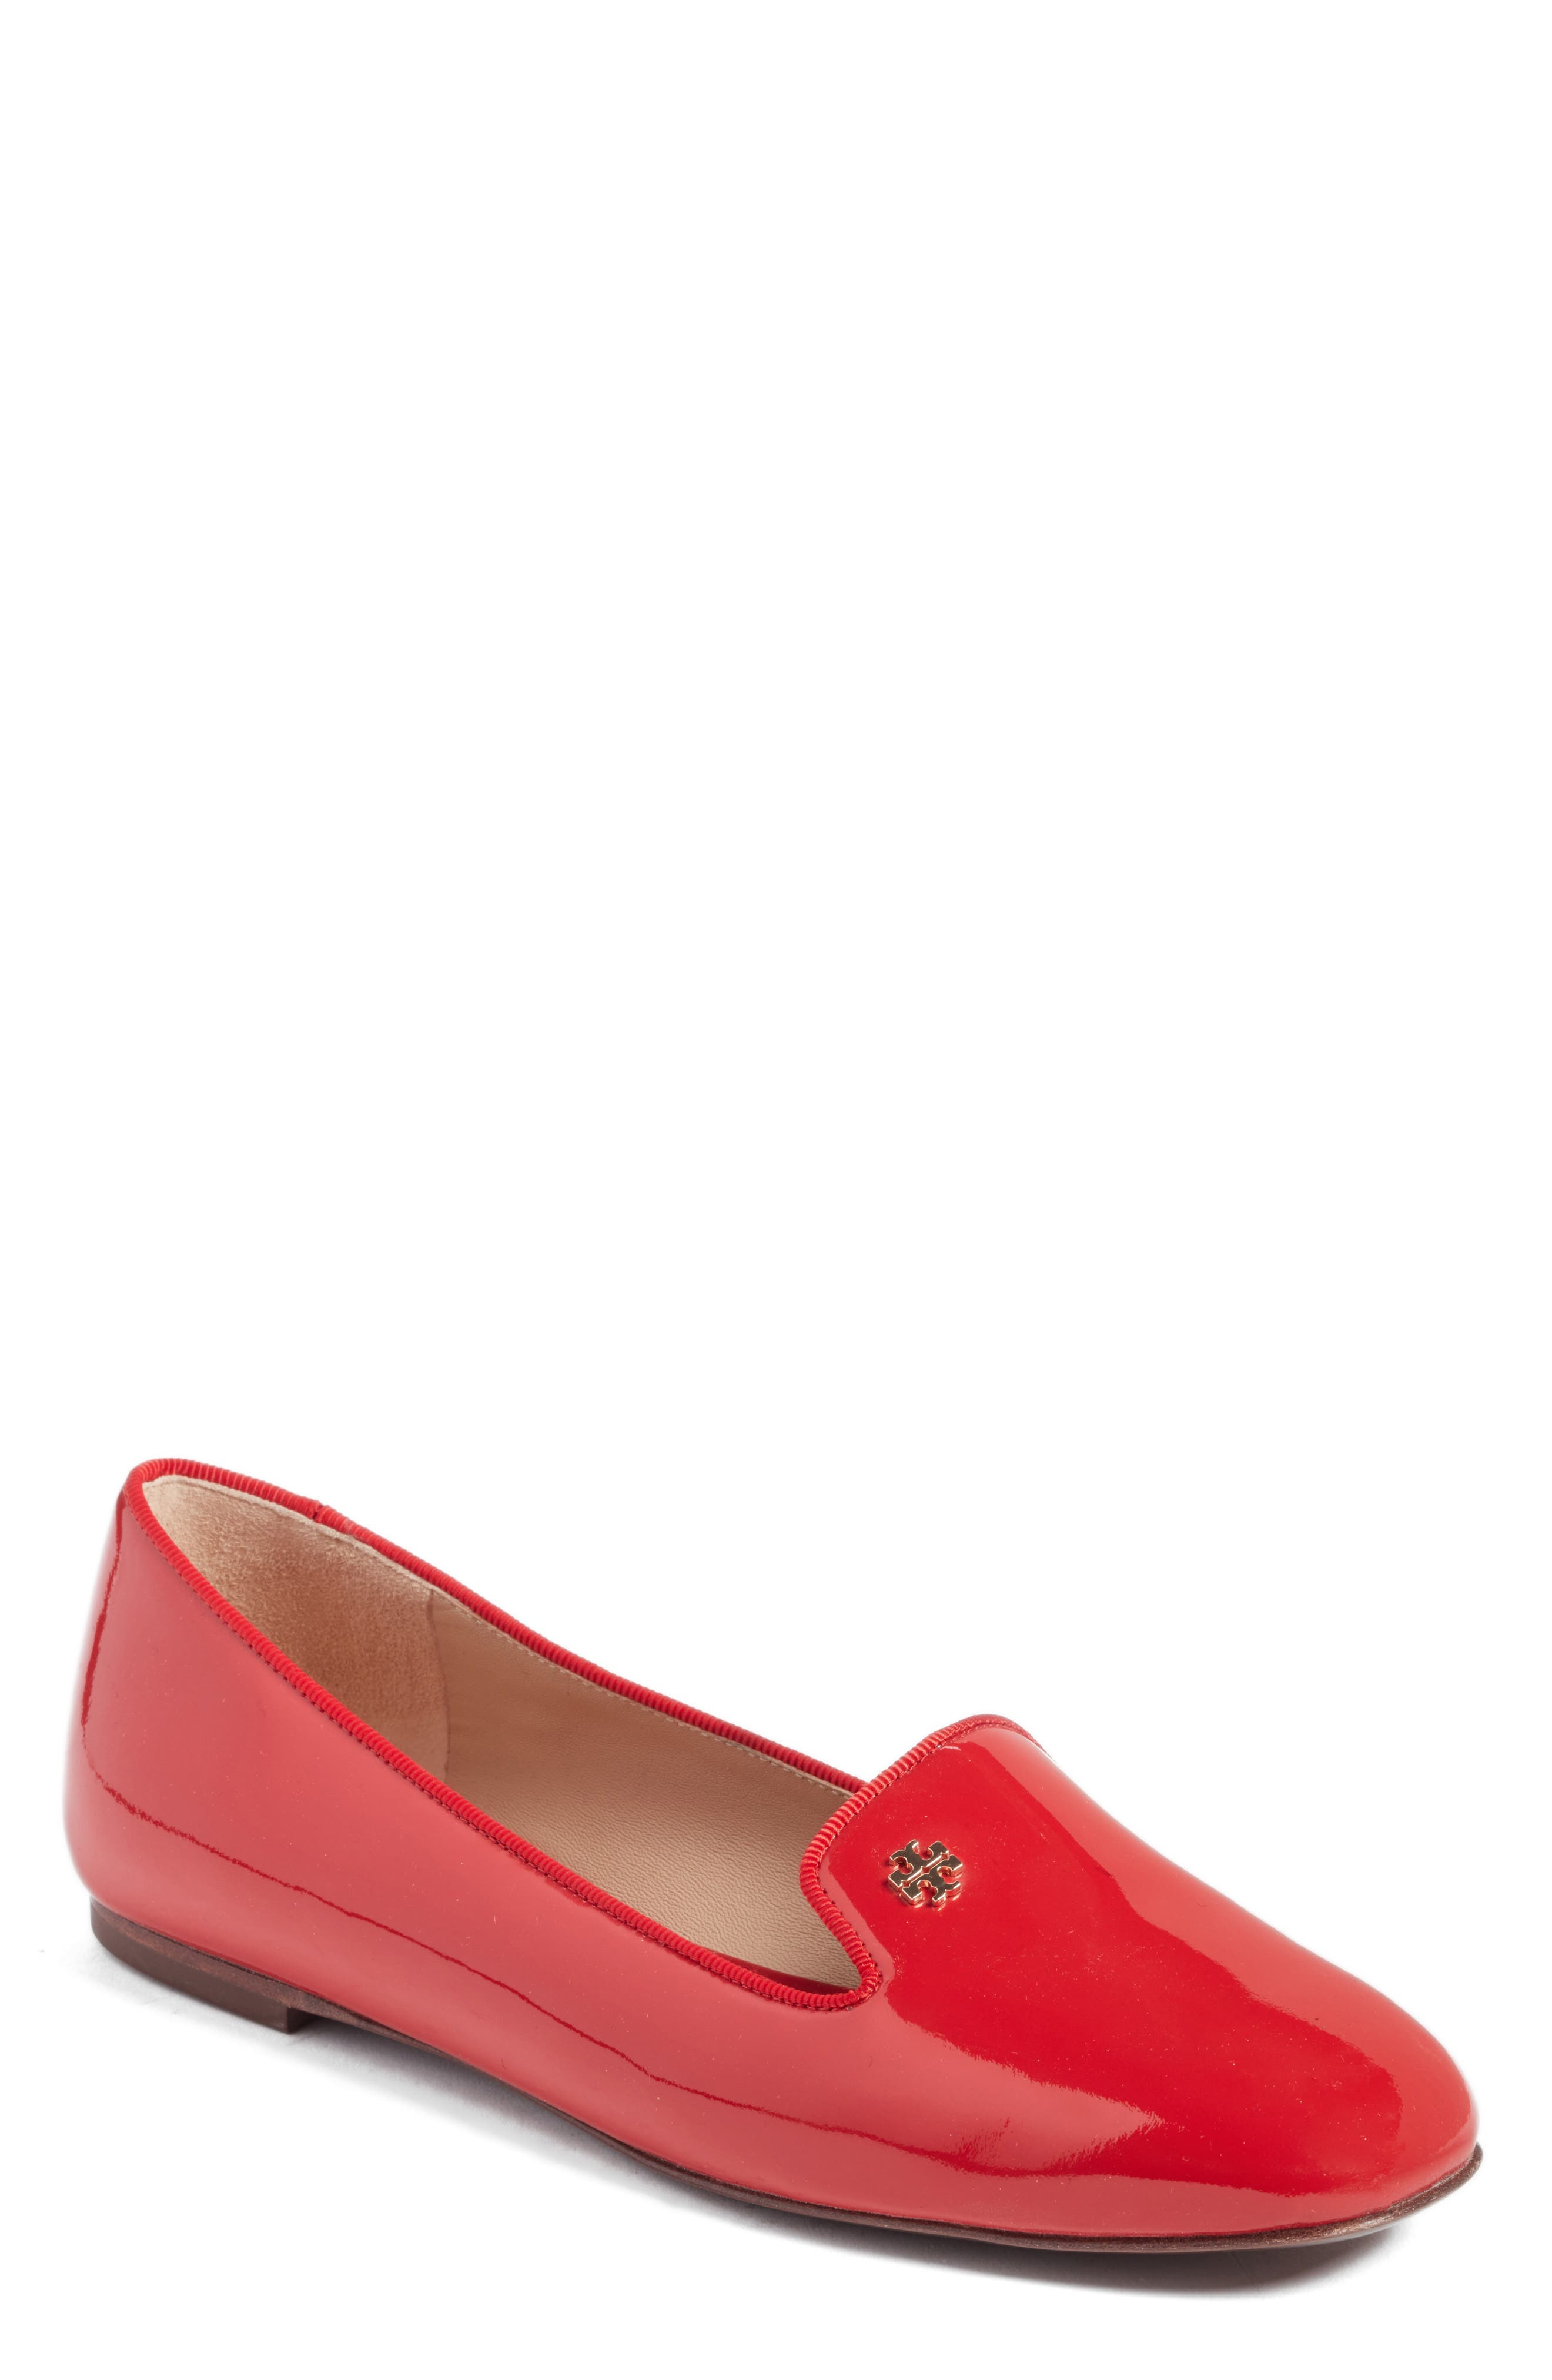 Main Image - Tory Burch Samantha Loafer (Women)